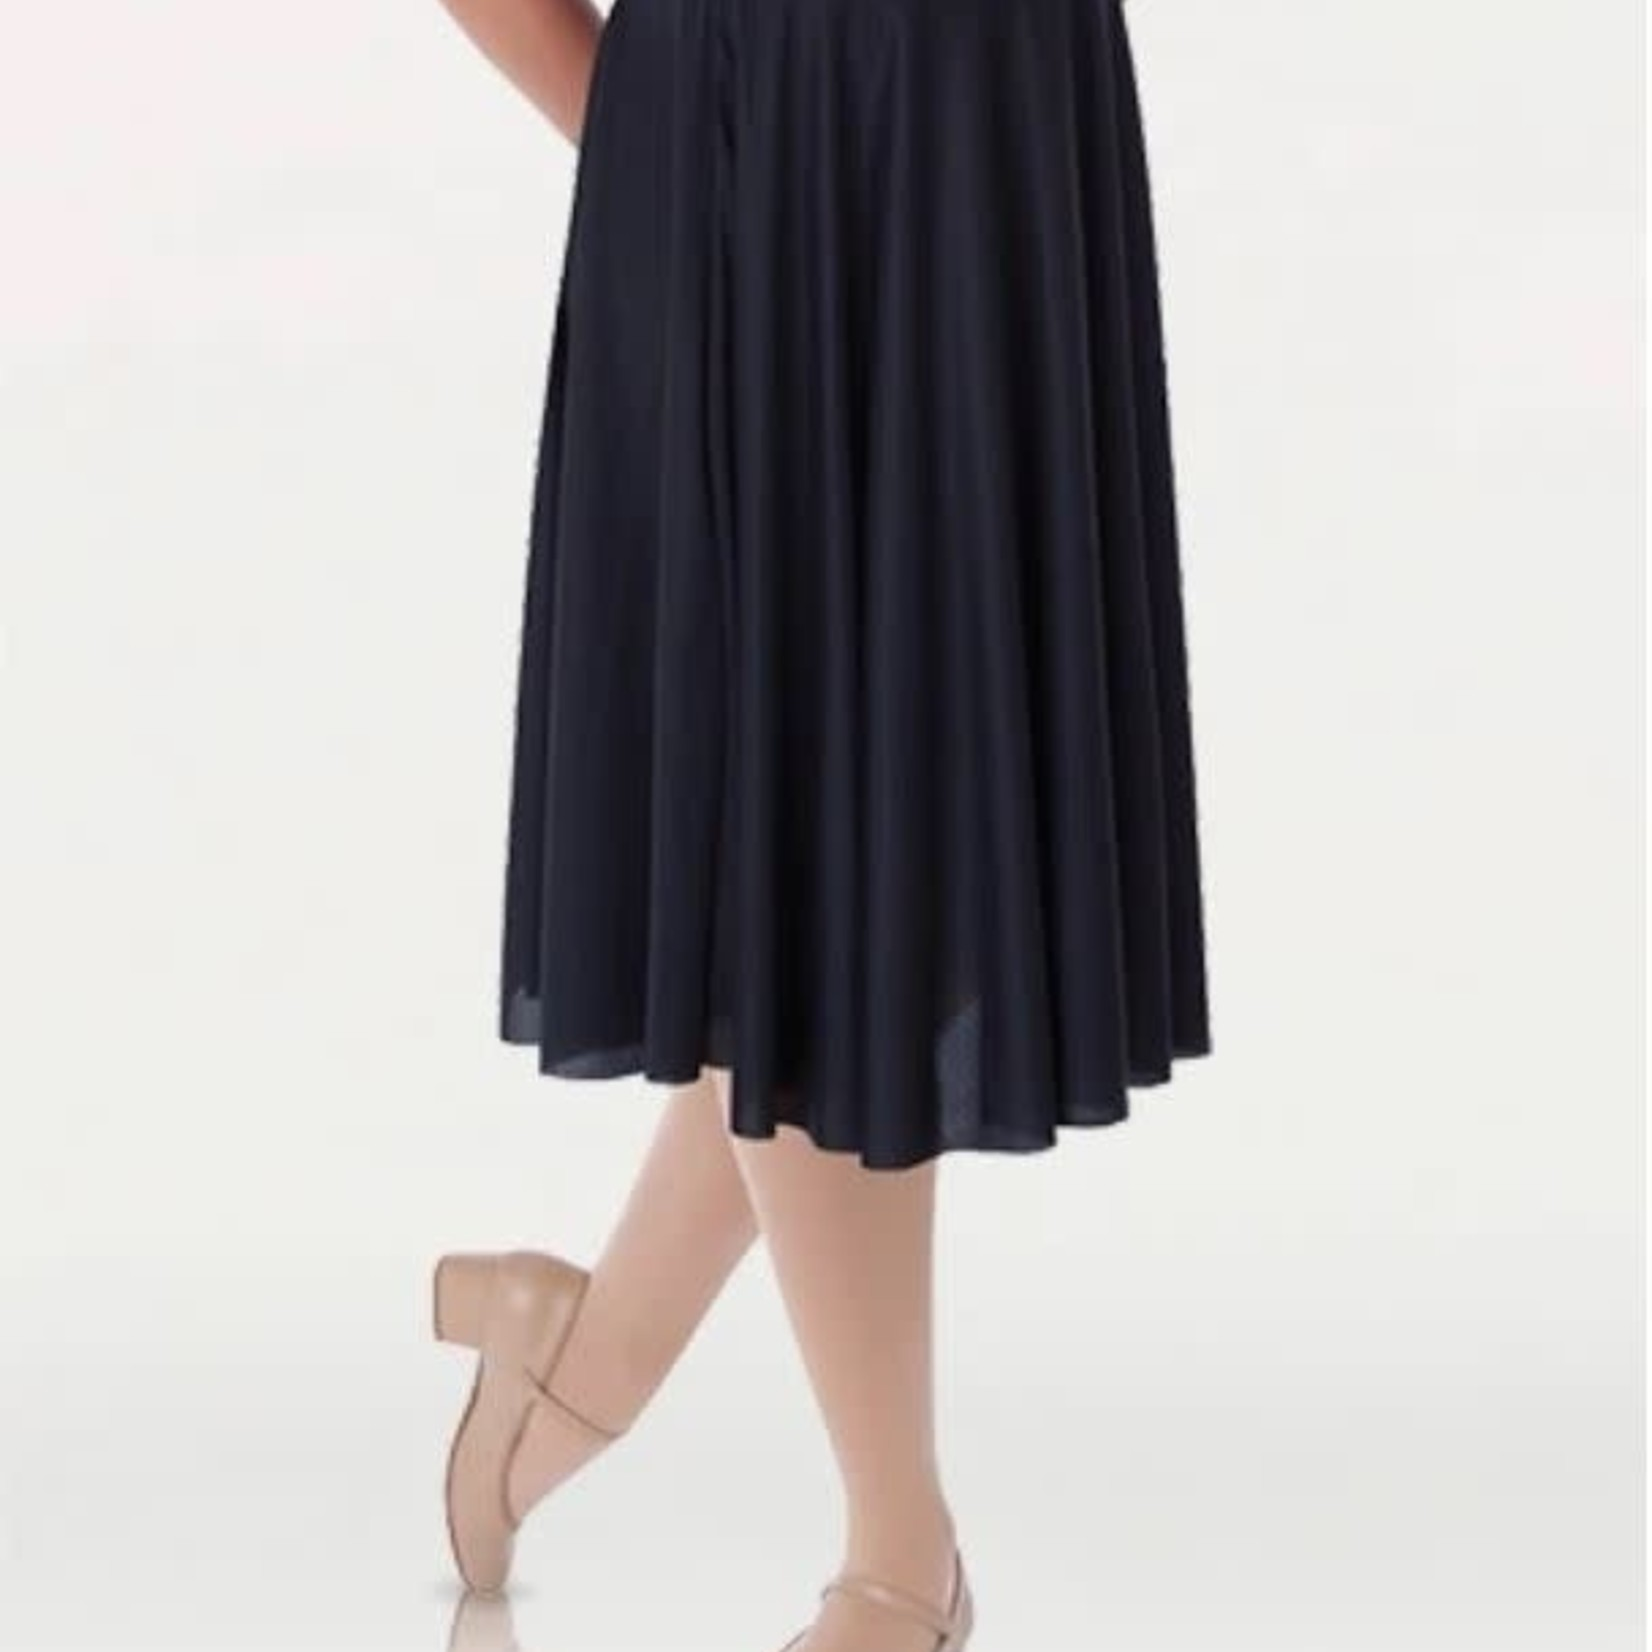 Body Wrappers Body Wrappers 0511 Child Circle Skirt